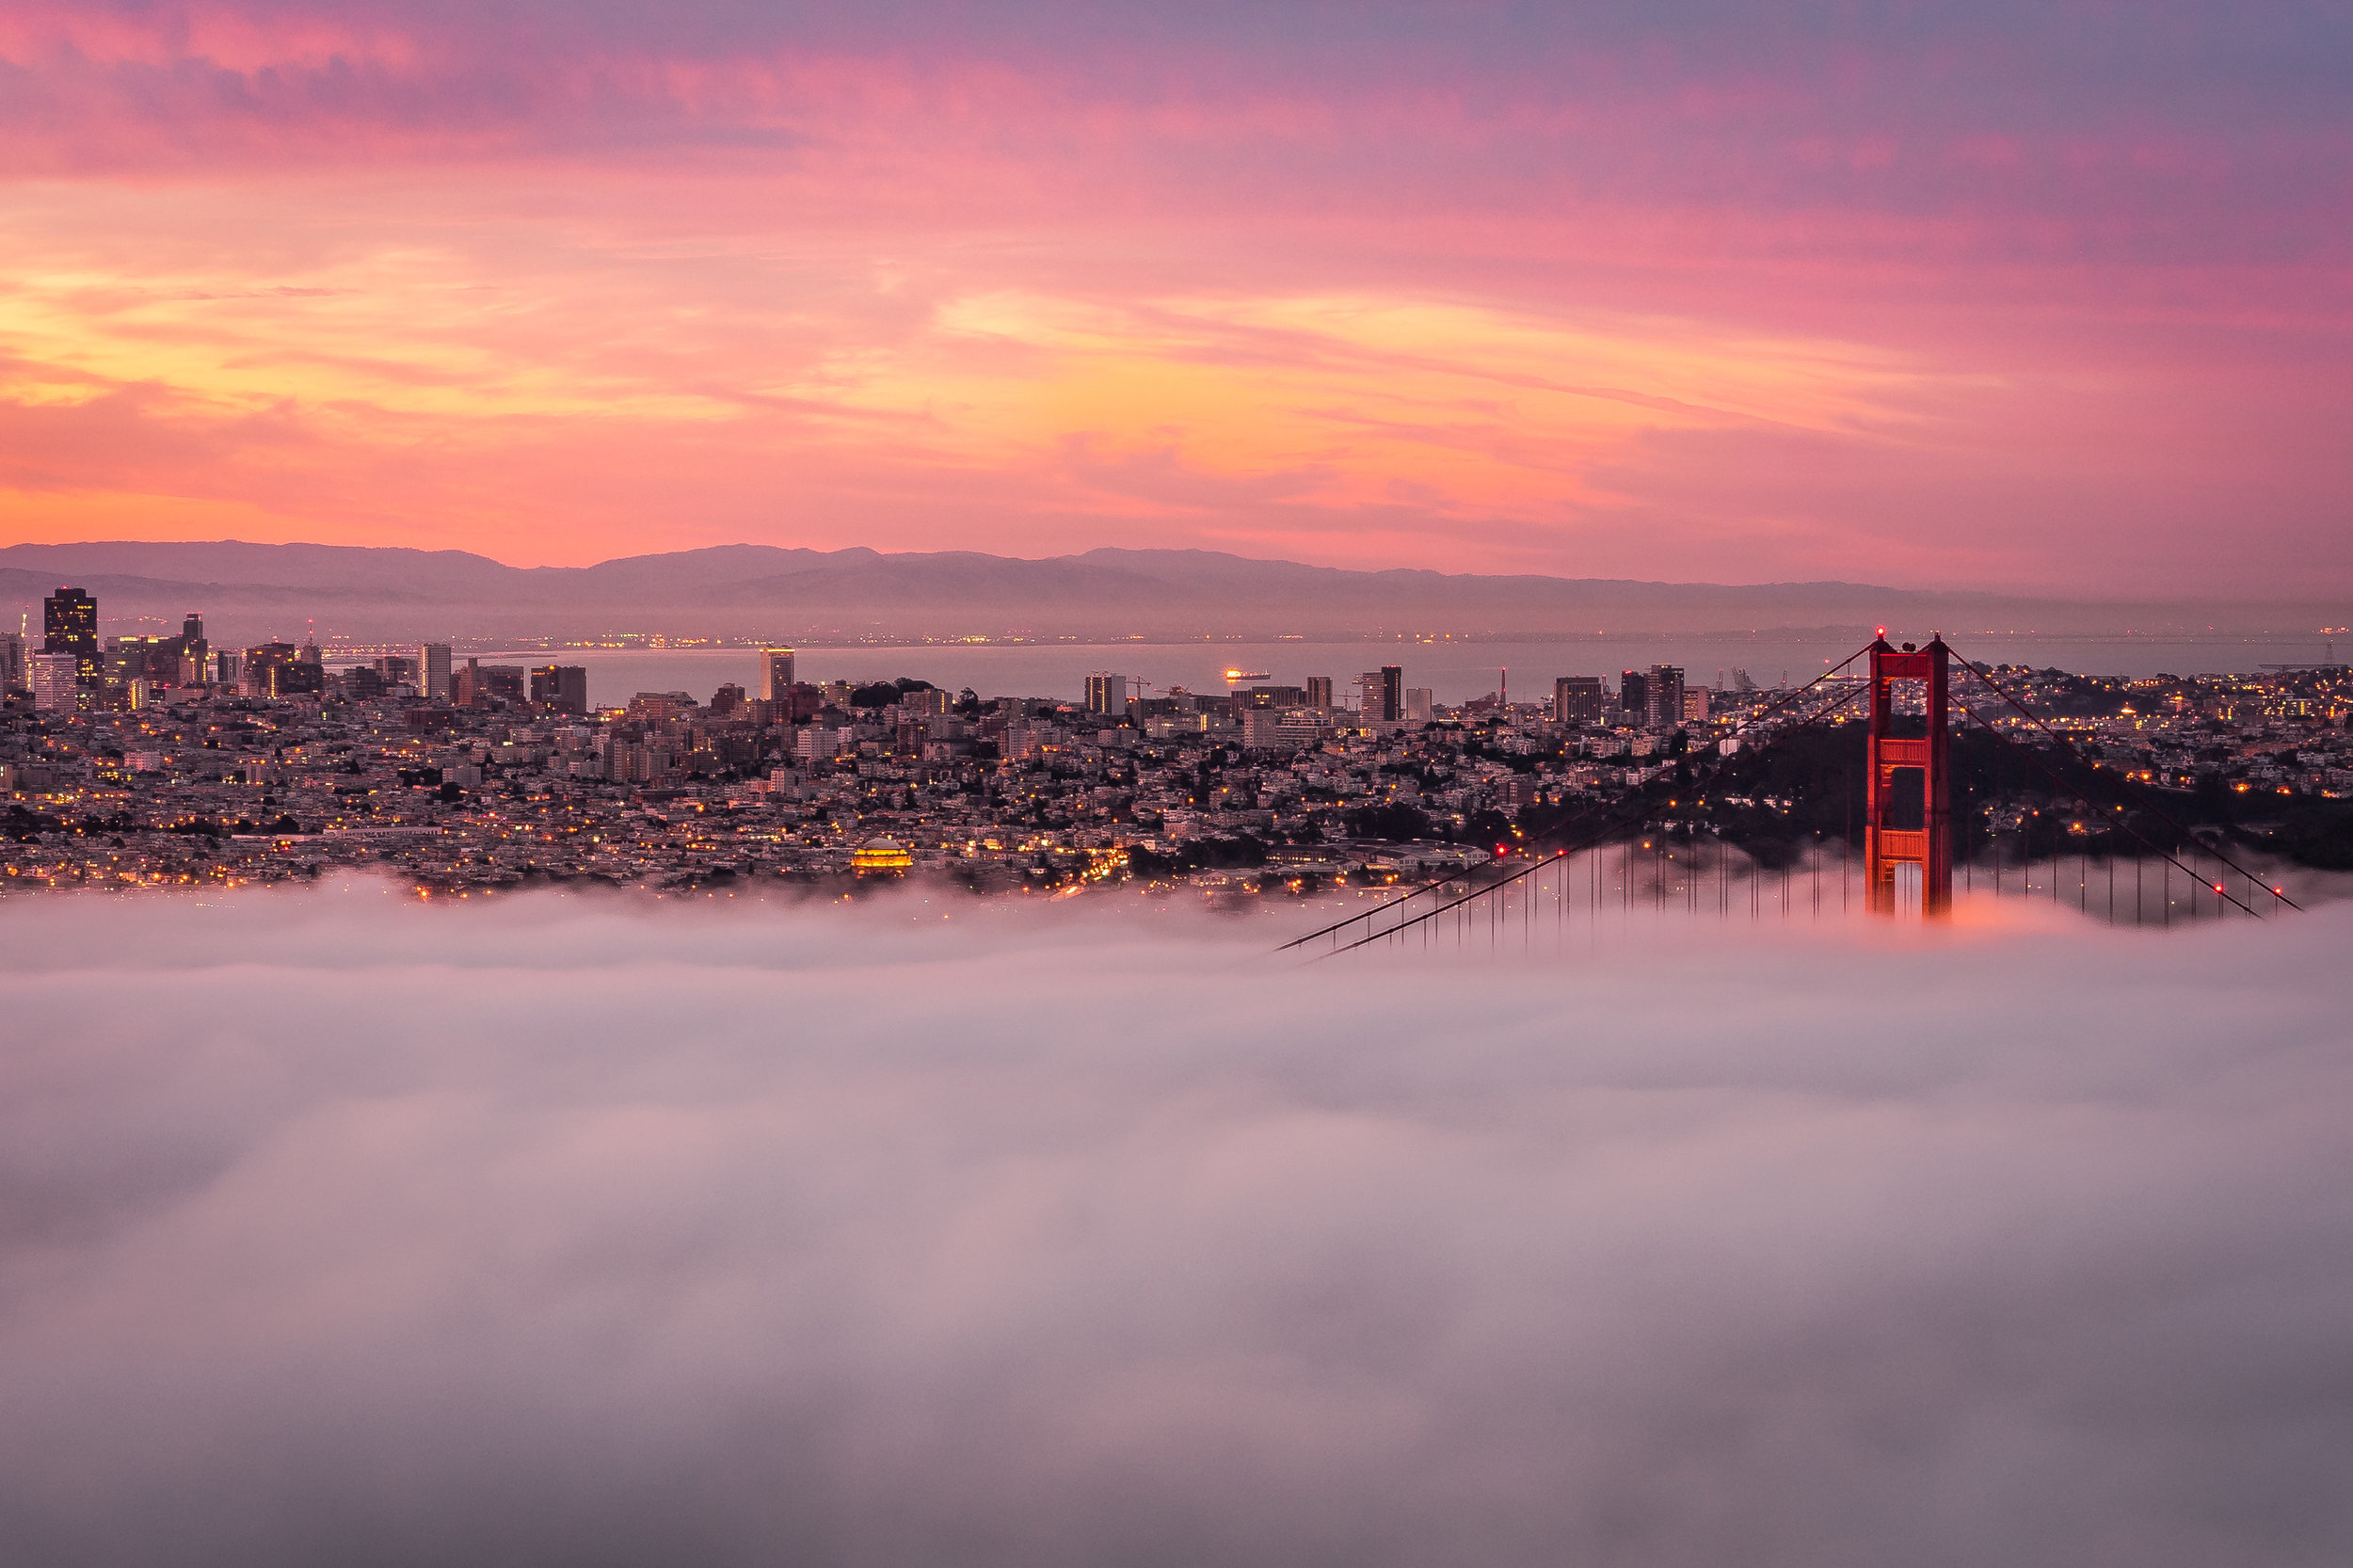 Low Fog Embracing the Golden Gate Bridge at Sunrise